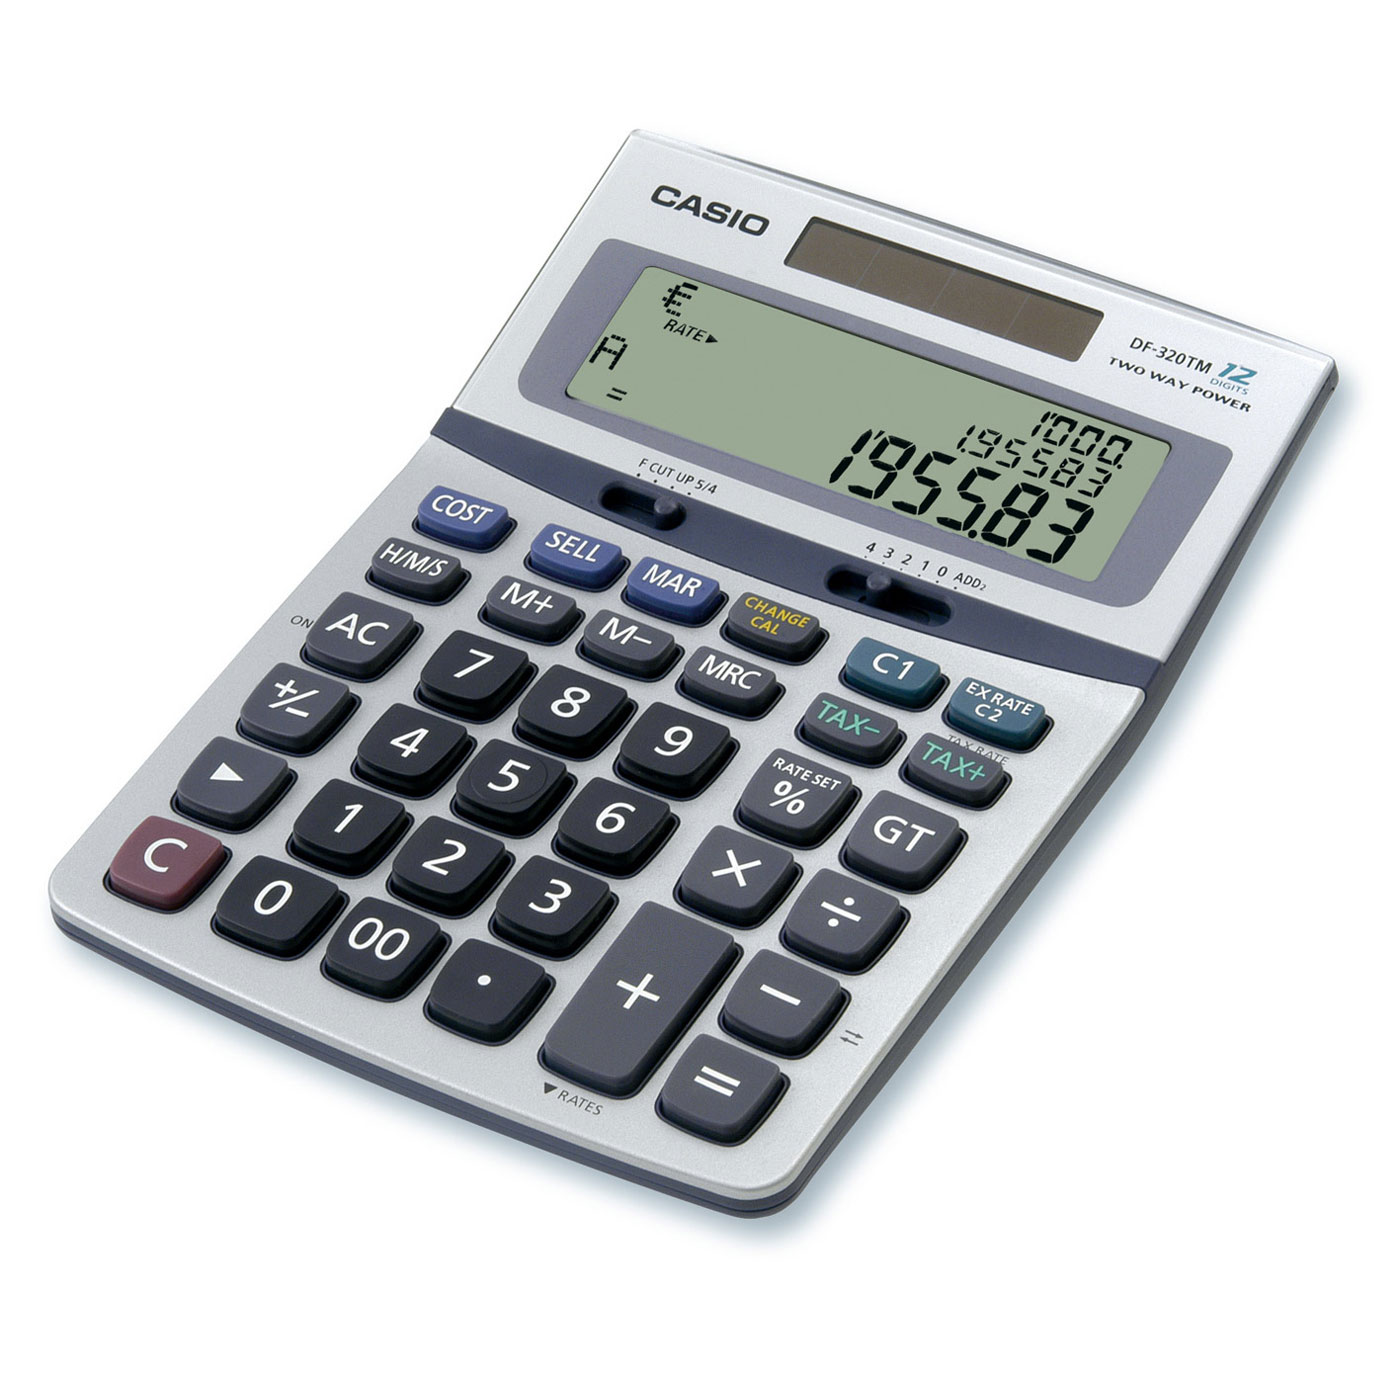 casio df 320tm calculatrice de bureau calculatrice